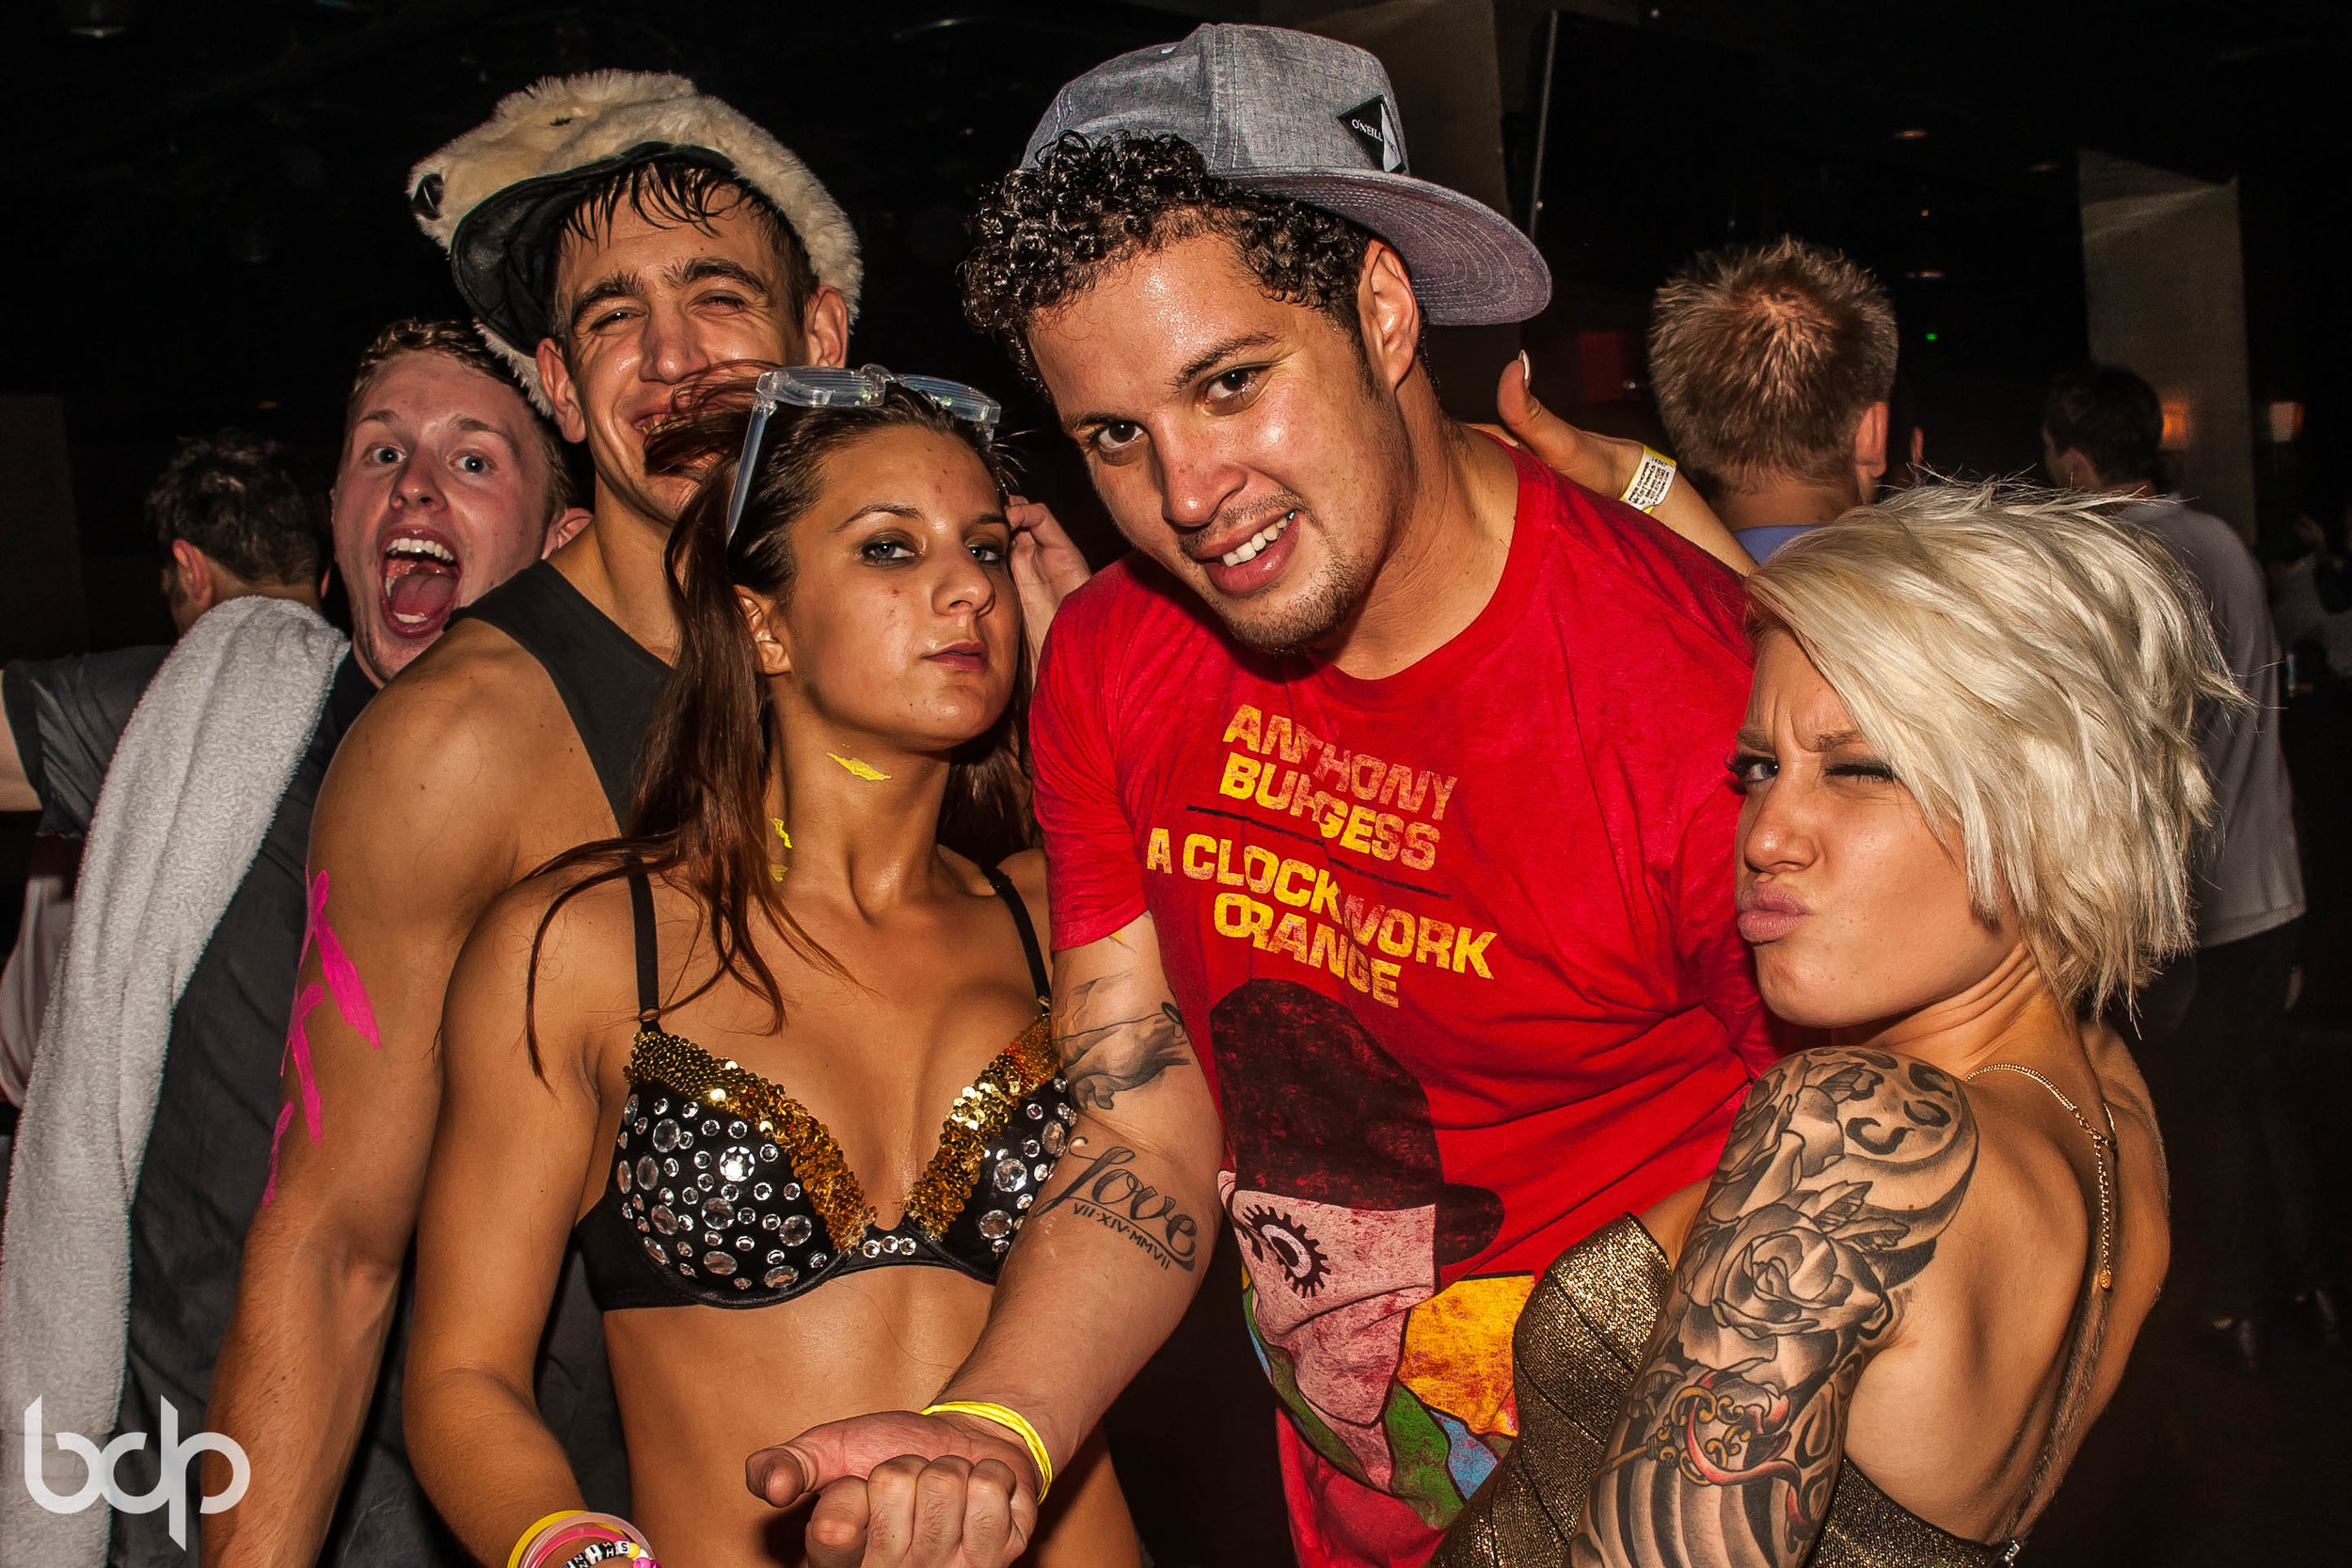 Aokify America Tour at Epic at Epic 110913 BDP-146.jpg